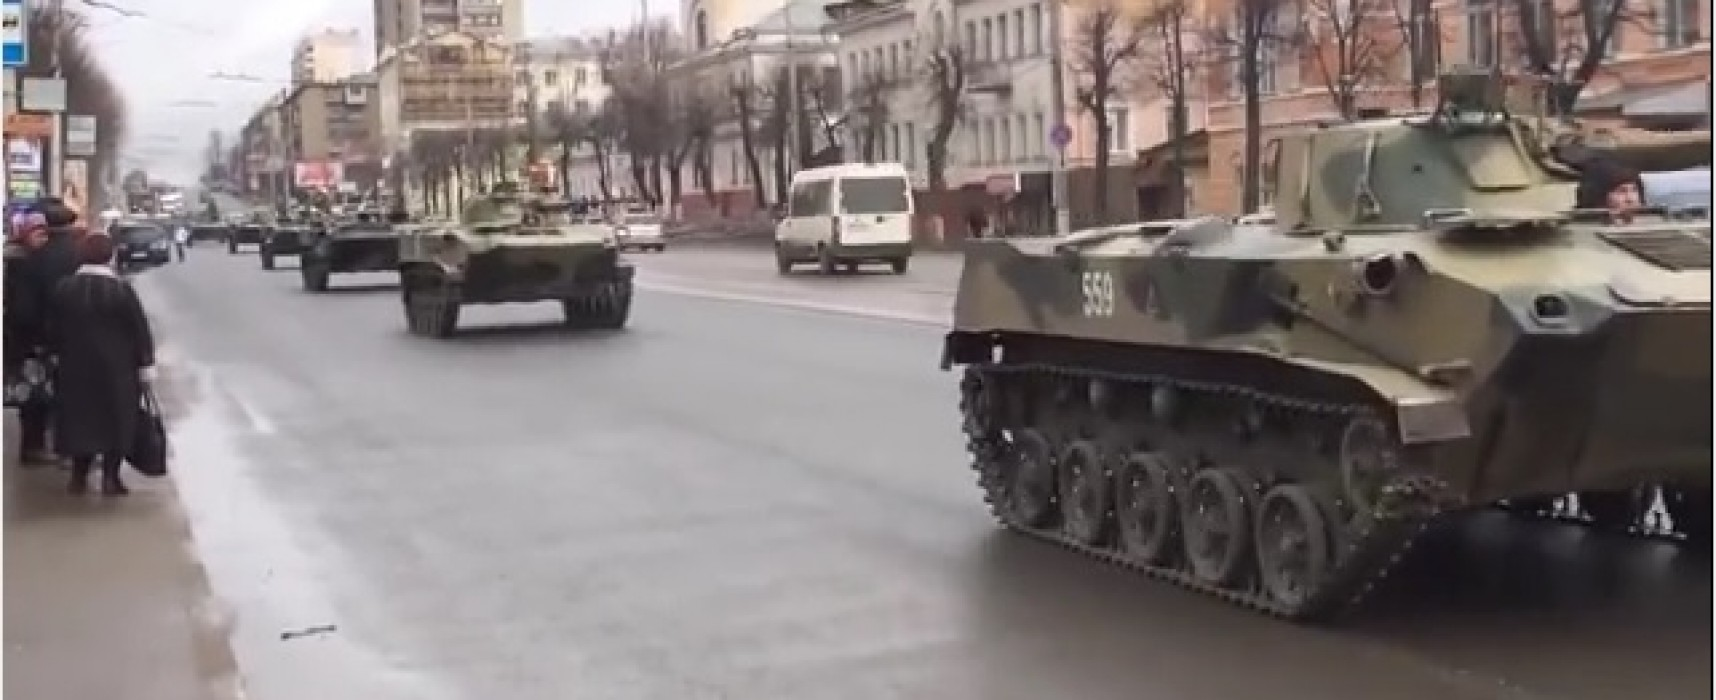 Spring Video Showing a Column of Russian Military Machines is Presented as a Current Event